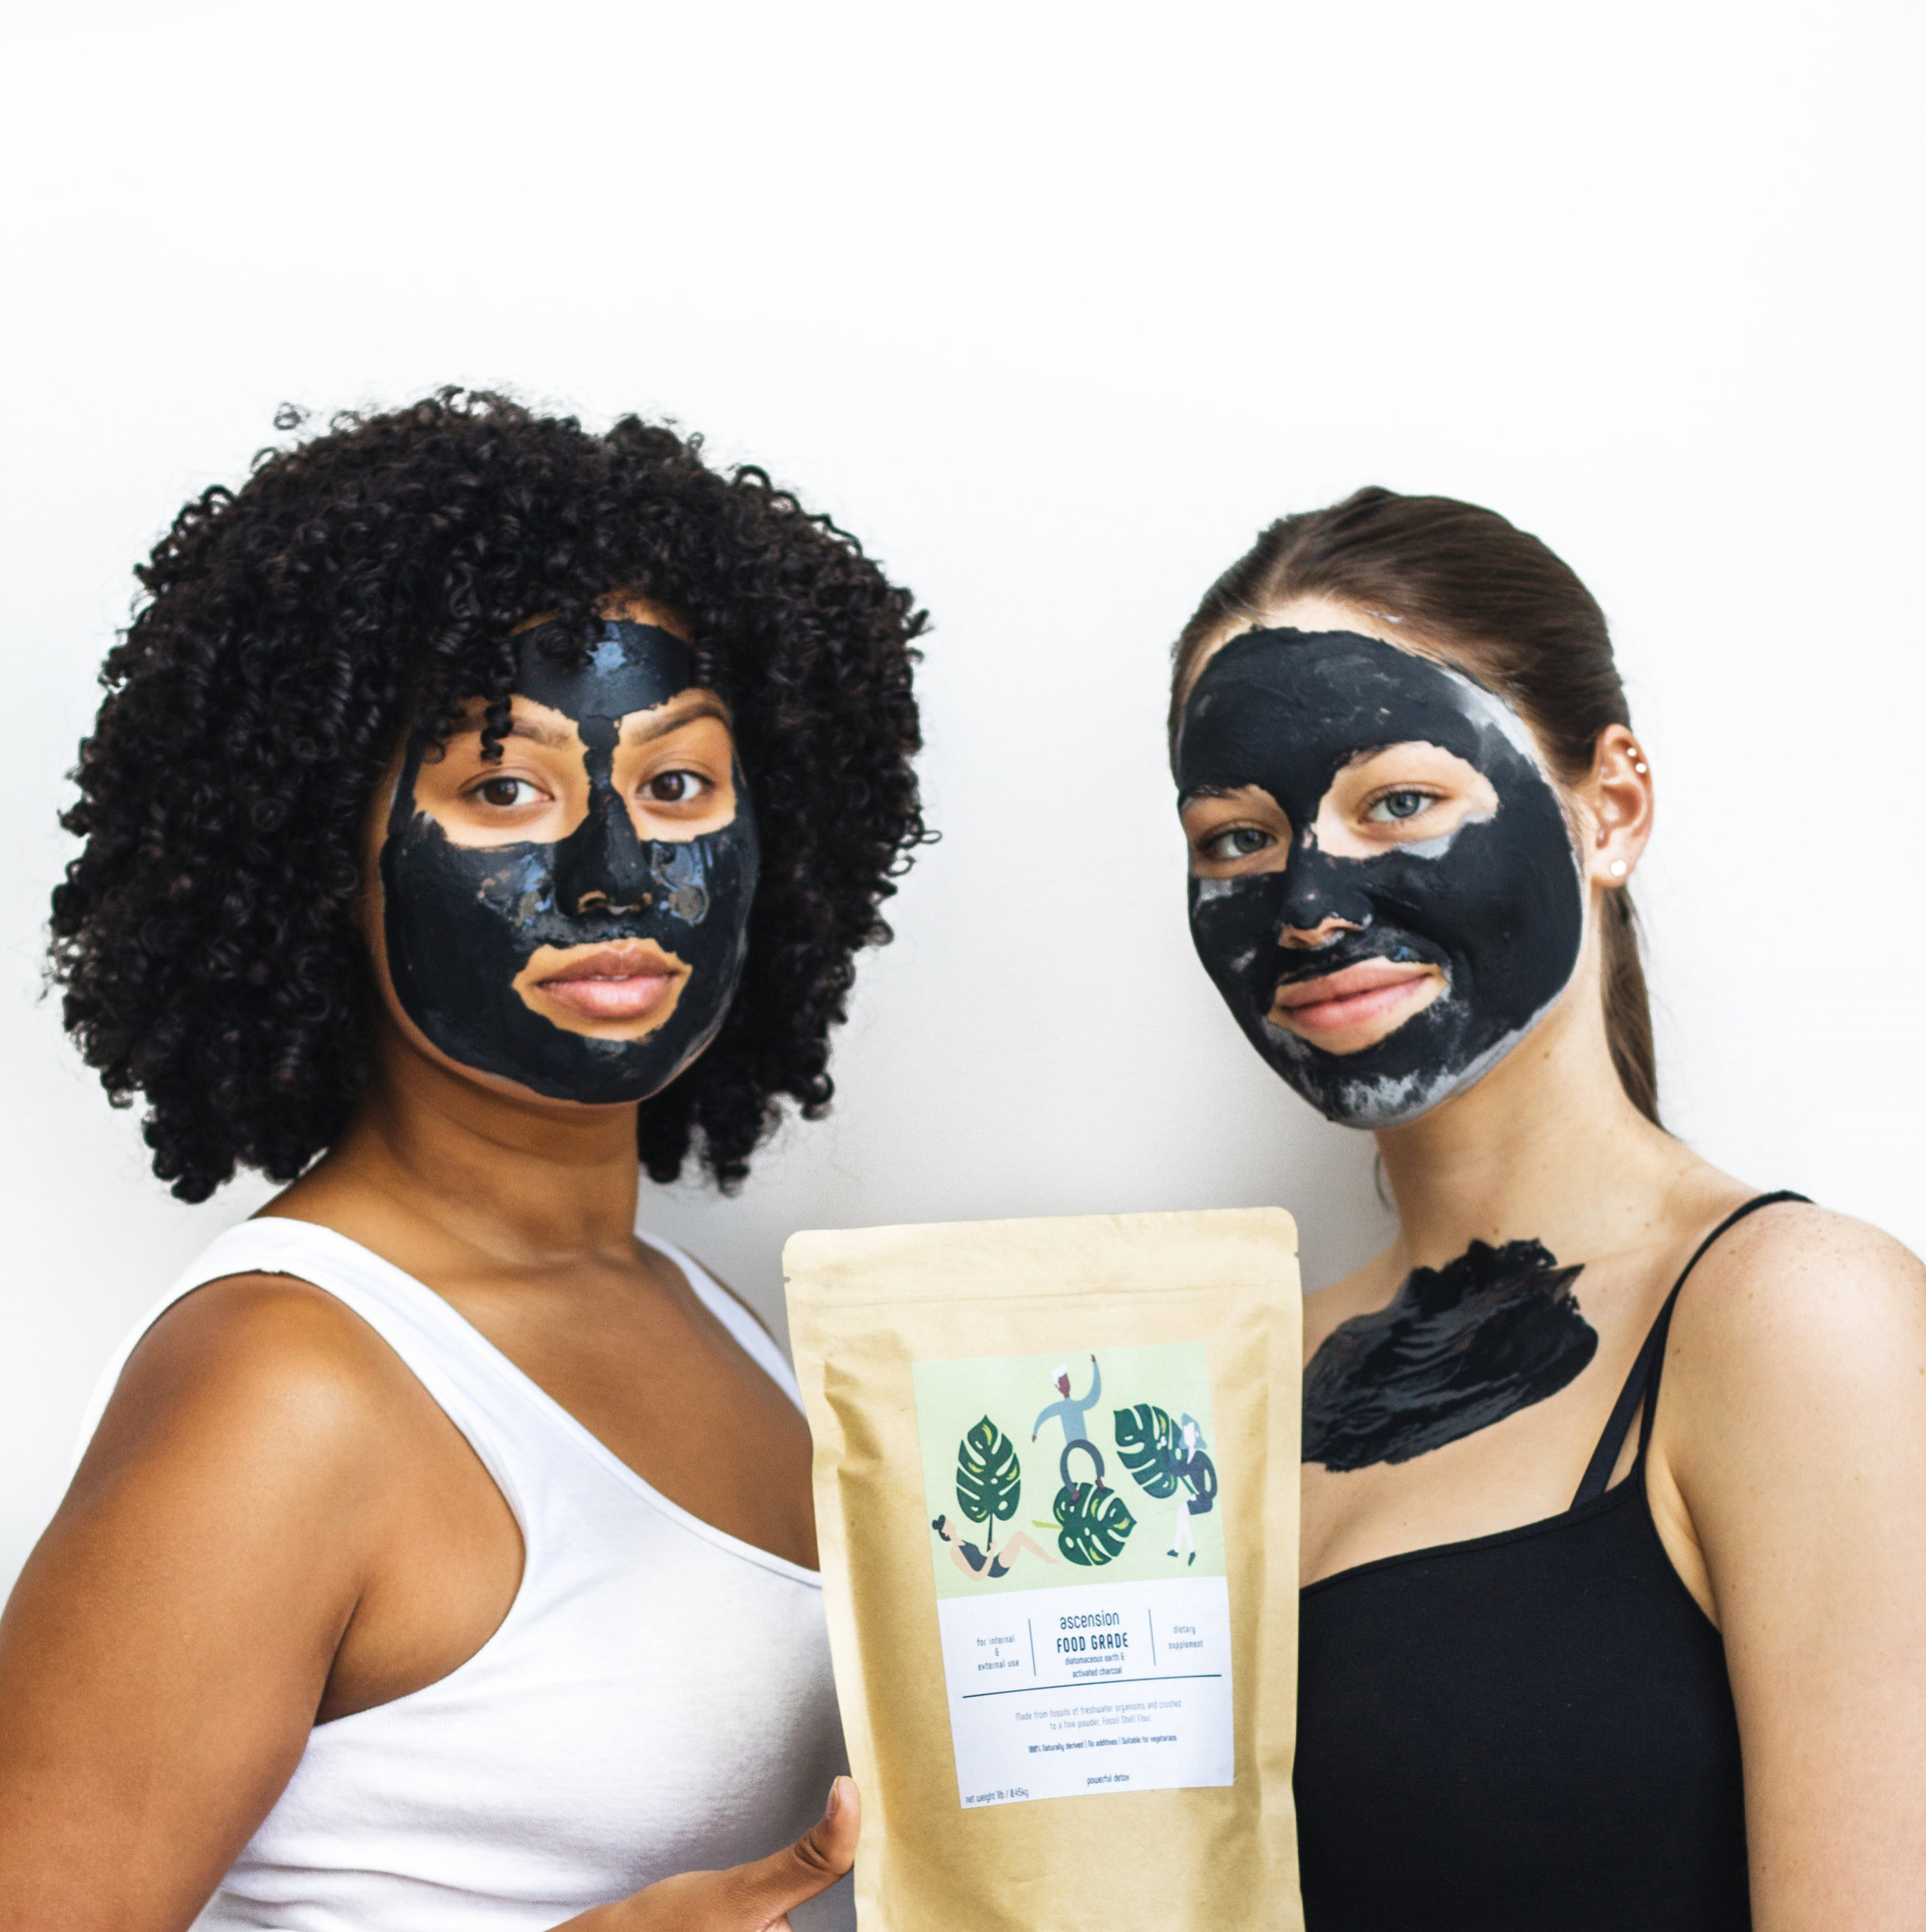 Shop Organic Skincare - Our multi-use, clay mask/dietary supplement products only contain 100% organic ingredients with no addictives whatsoever.